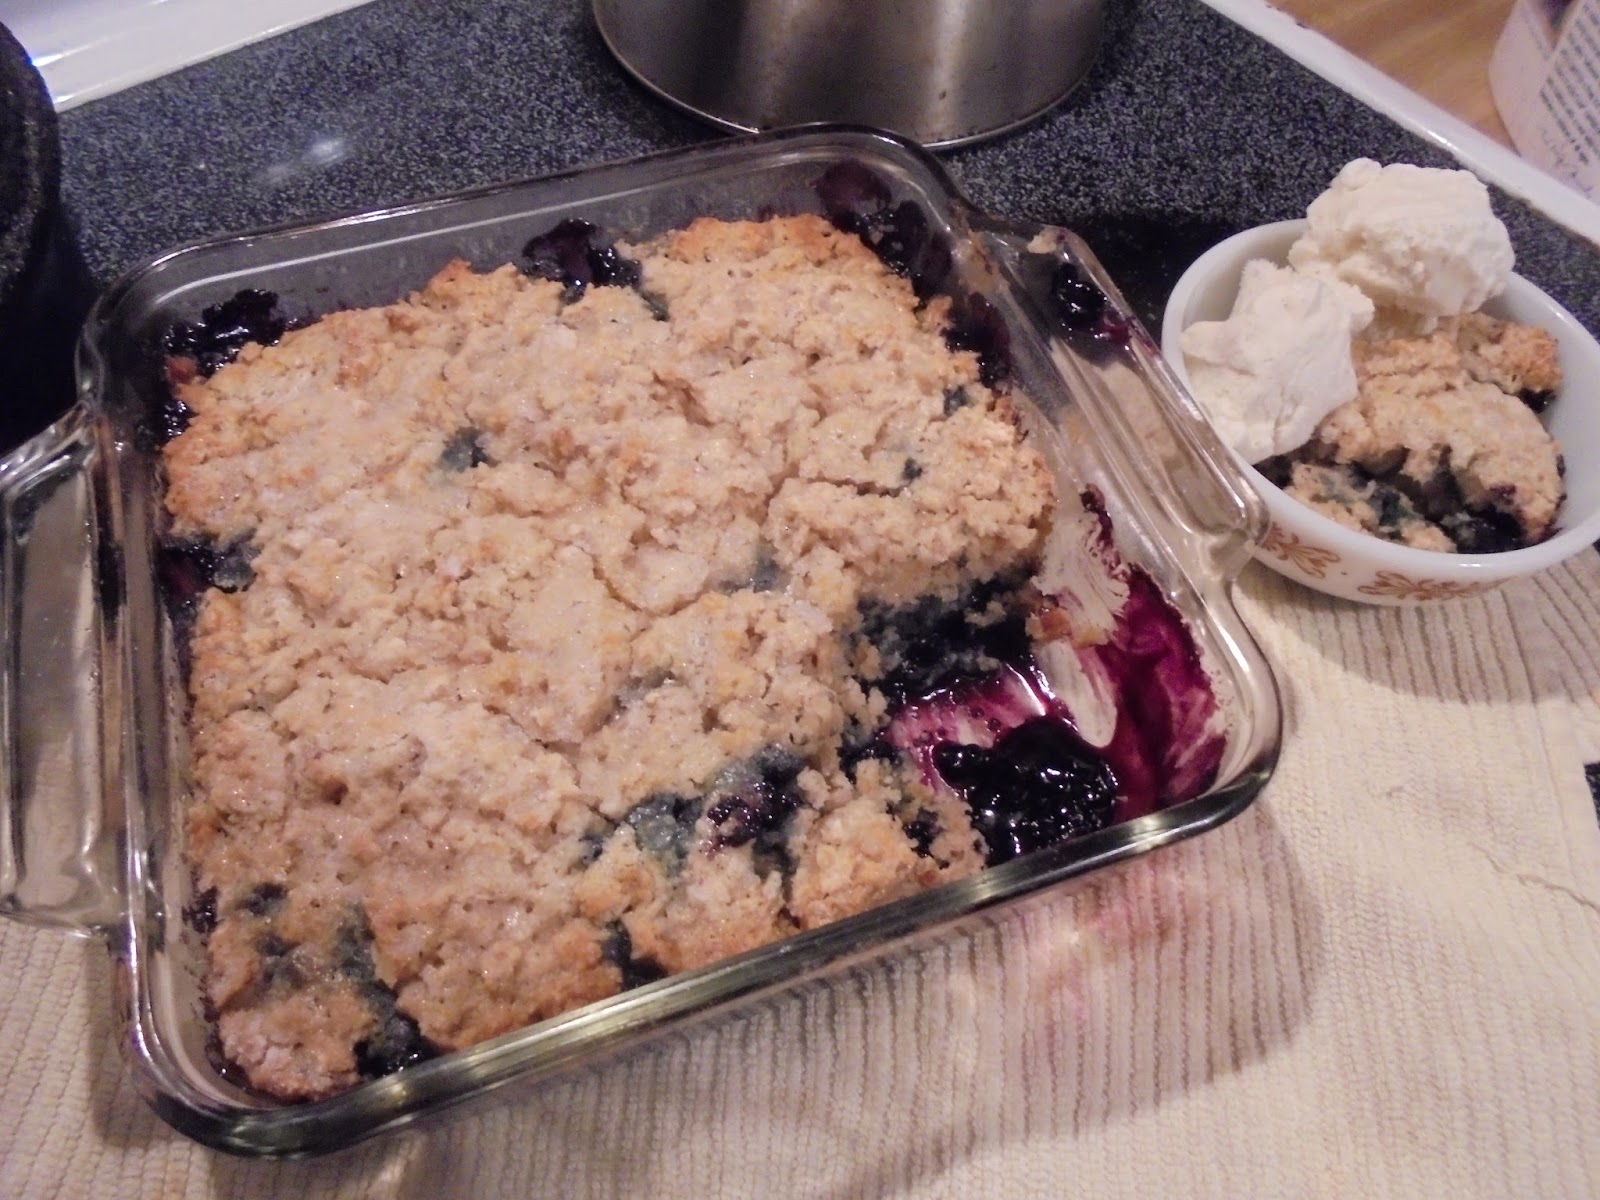 biscuit blueberry cobbler oatmeal blueberry cobbler oatmeal blueberry ...